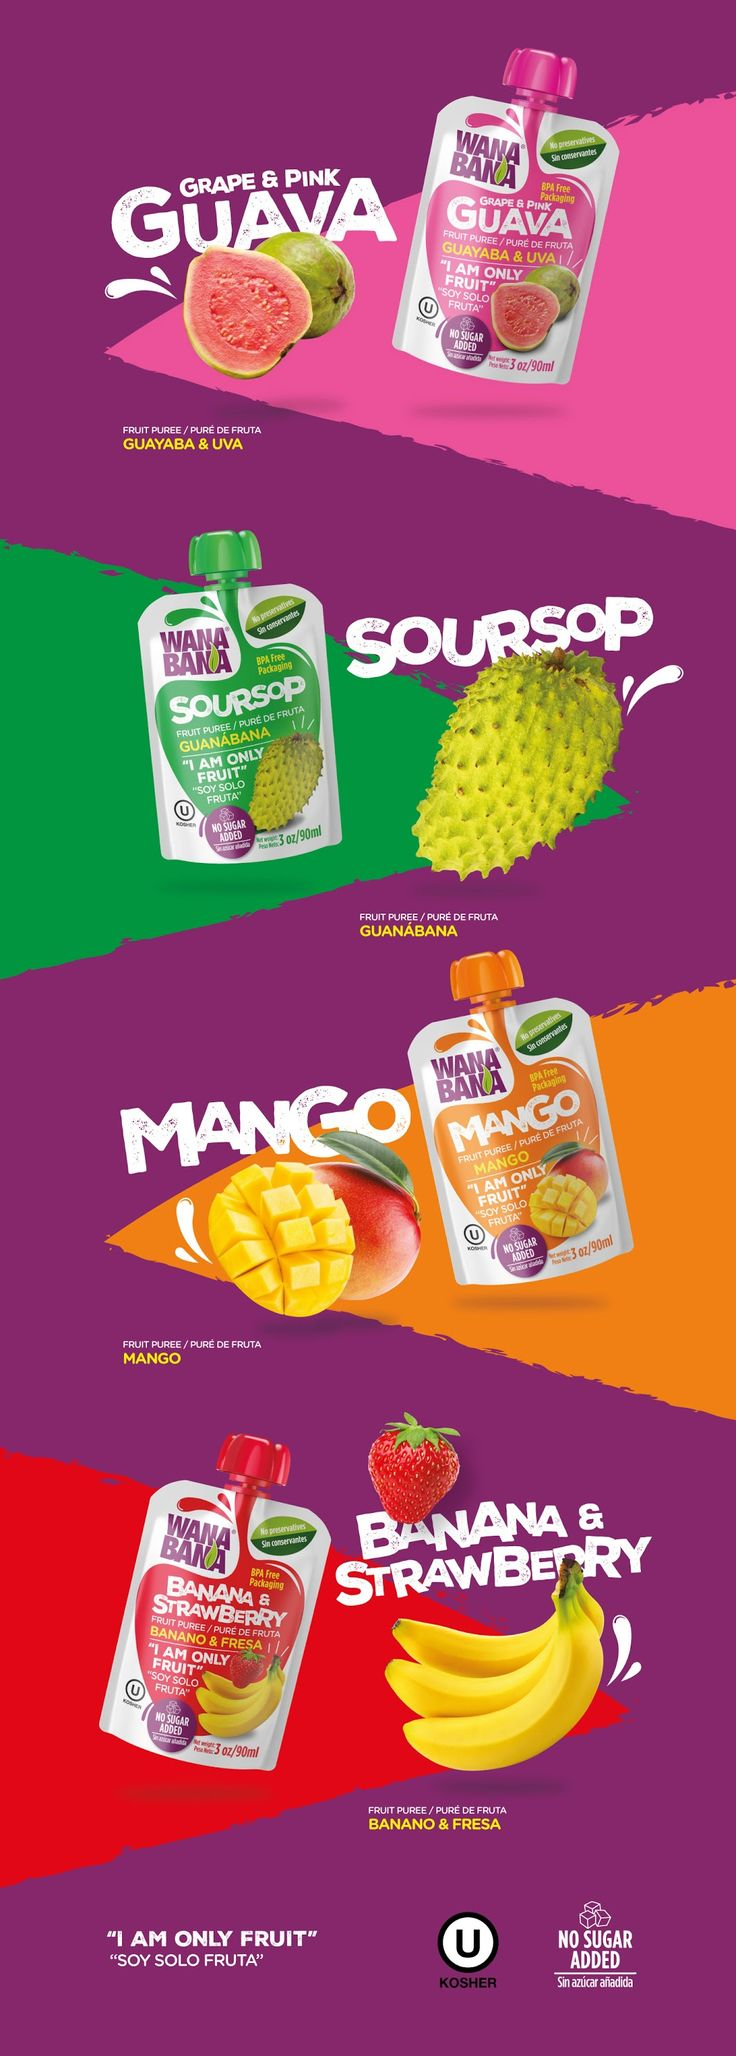 Wanabana - Fruit Puree on Packaging of the World - Creative Package Design Gallery